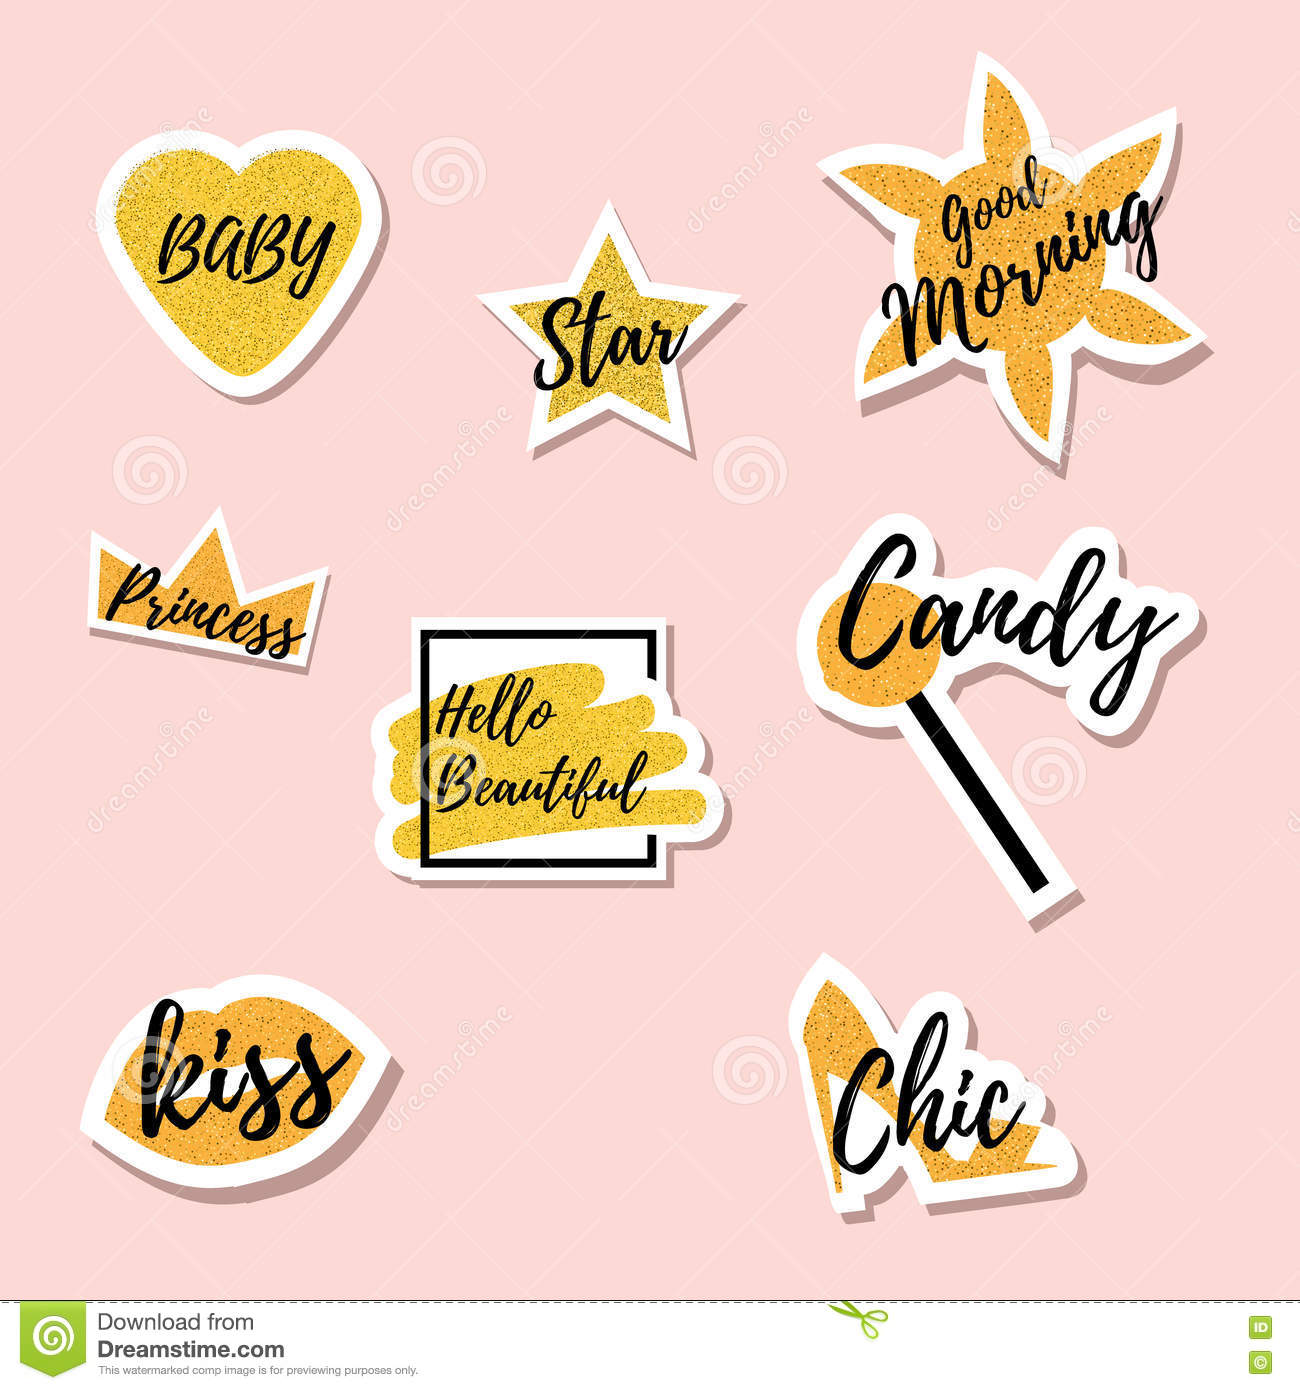 Trendy Fashionable Gold Colored Pins Cool Patches Badges Stickers